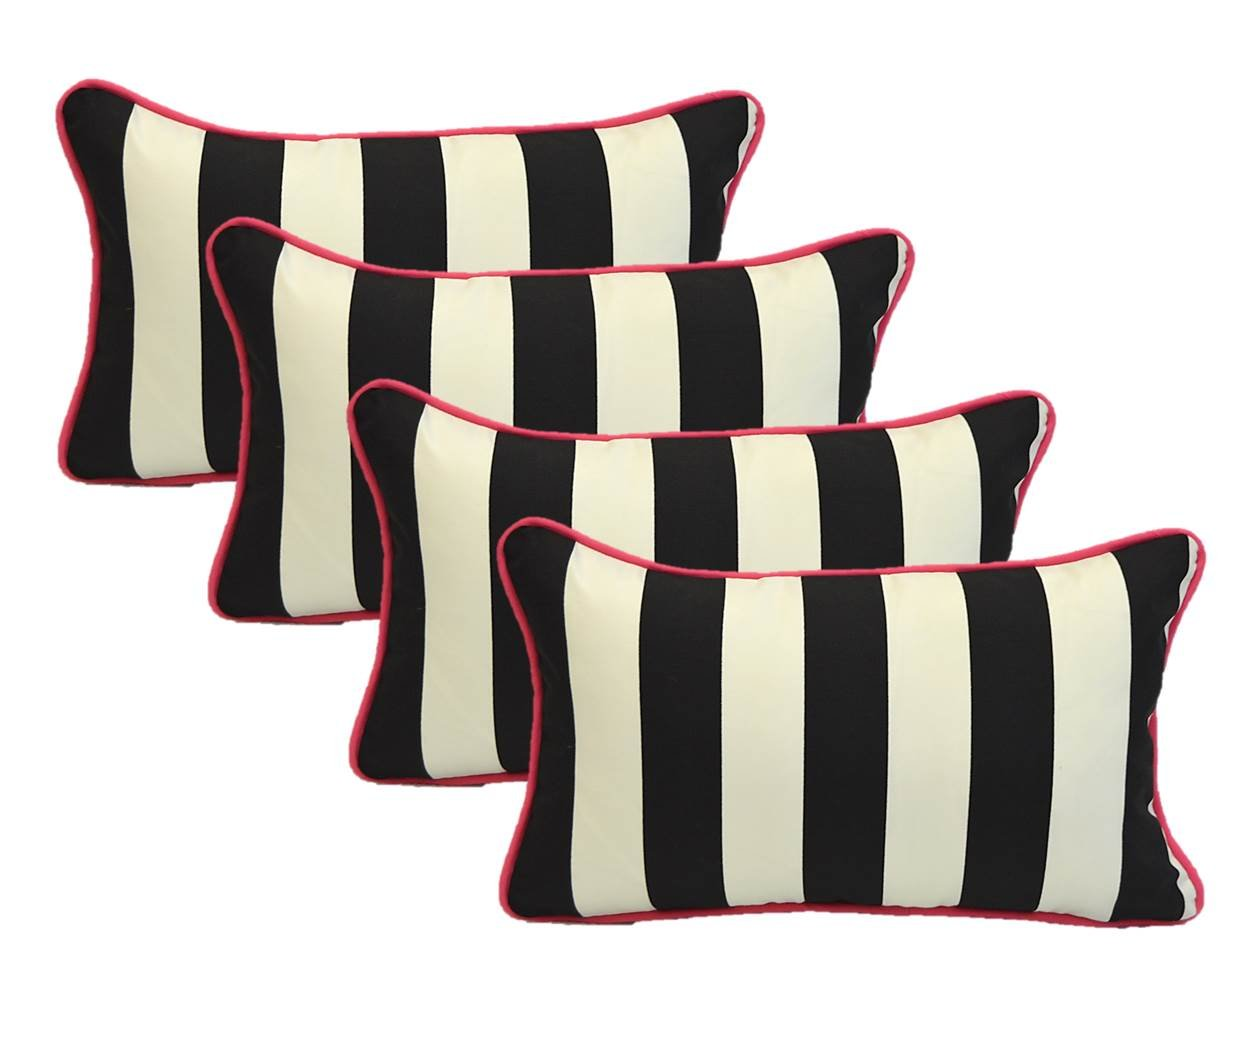 Set of 4 Indoor / Outdoor Decorative Lumbar / Rectangle Pillows - Black and White Stripe with Hot Pink Piping / Cording - Zipper Cover & Insert